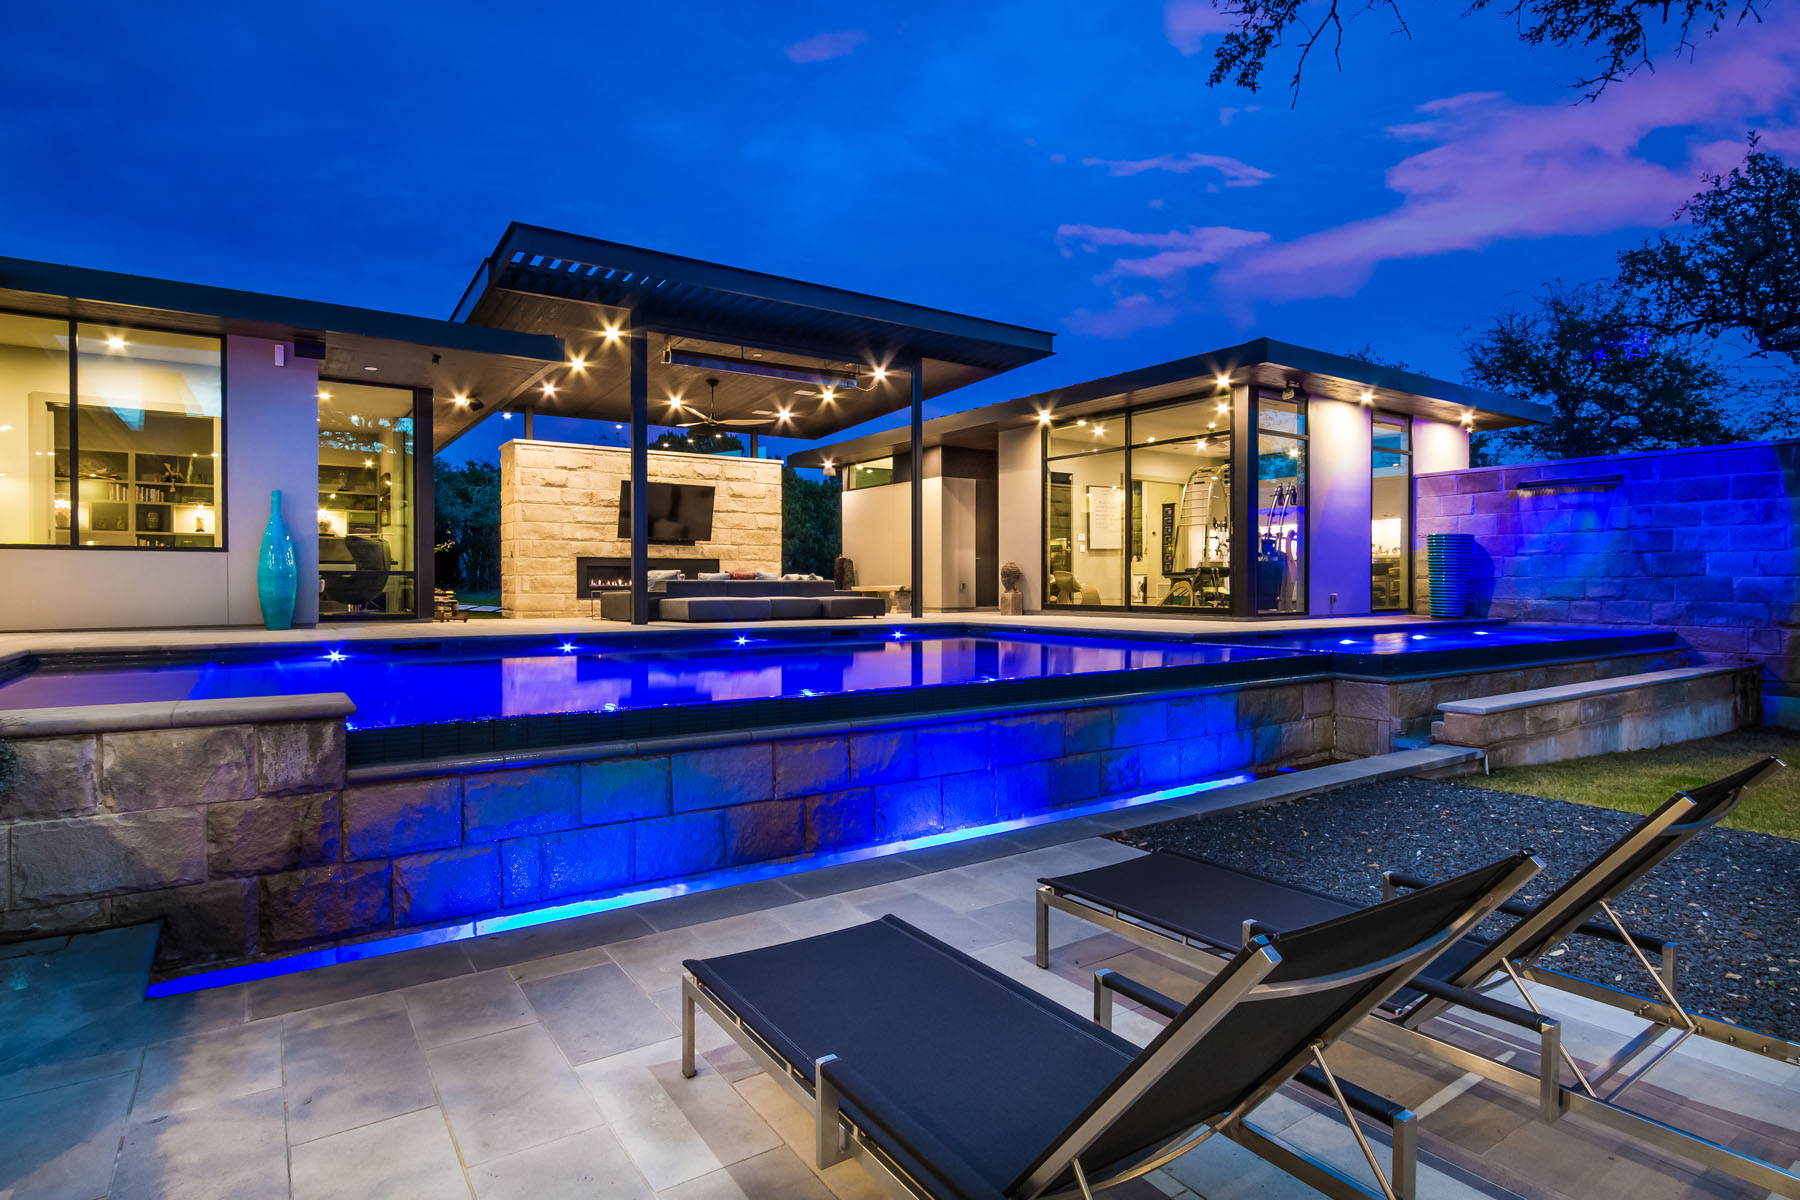 Single Family Home for Sale at Tranquil Contemporary in Barton Creek 4017 Verano Dr Austin, Texas 78735 United States